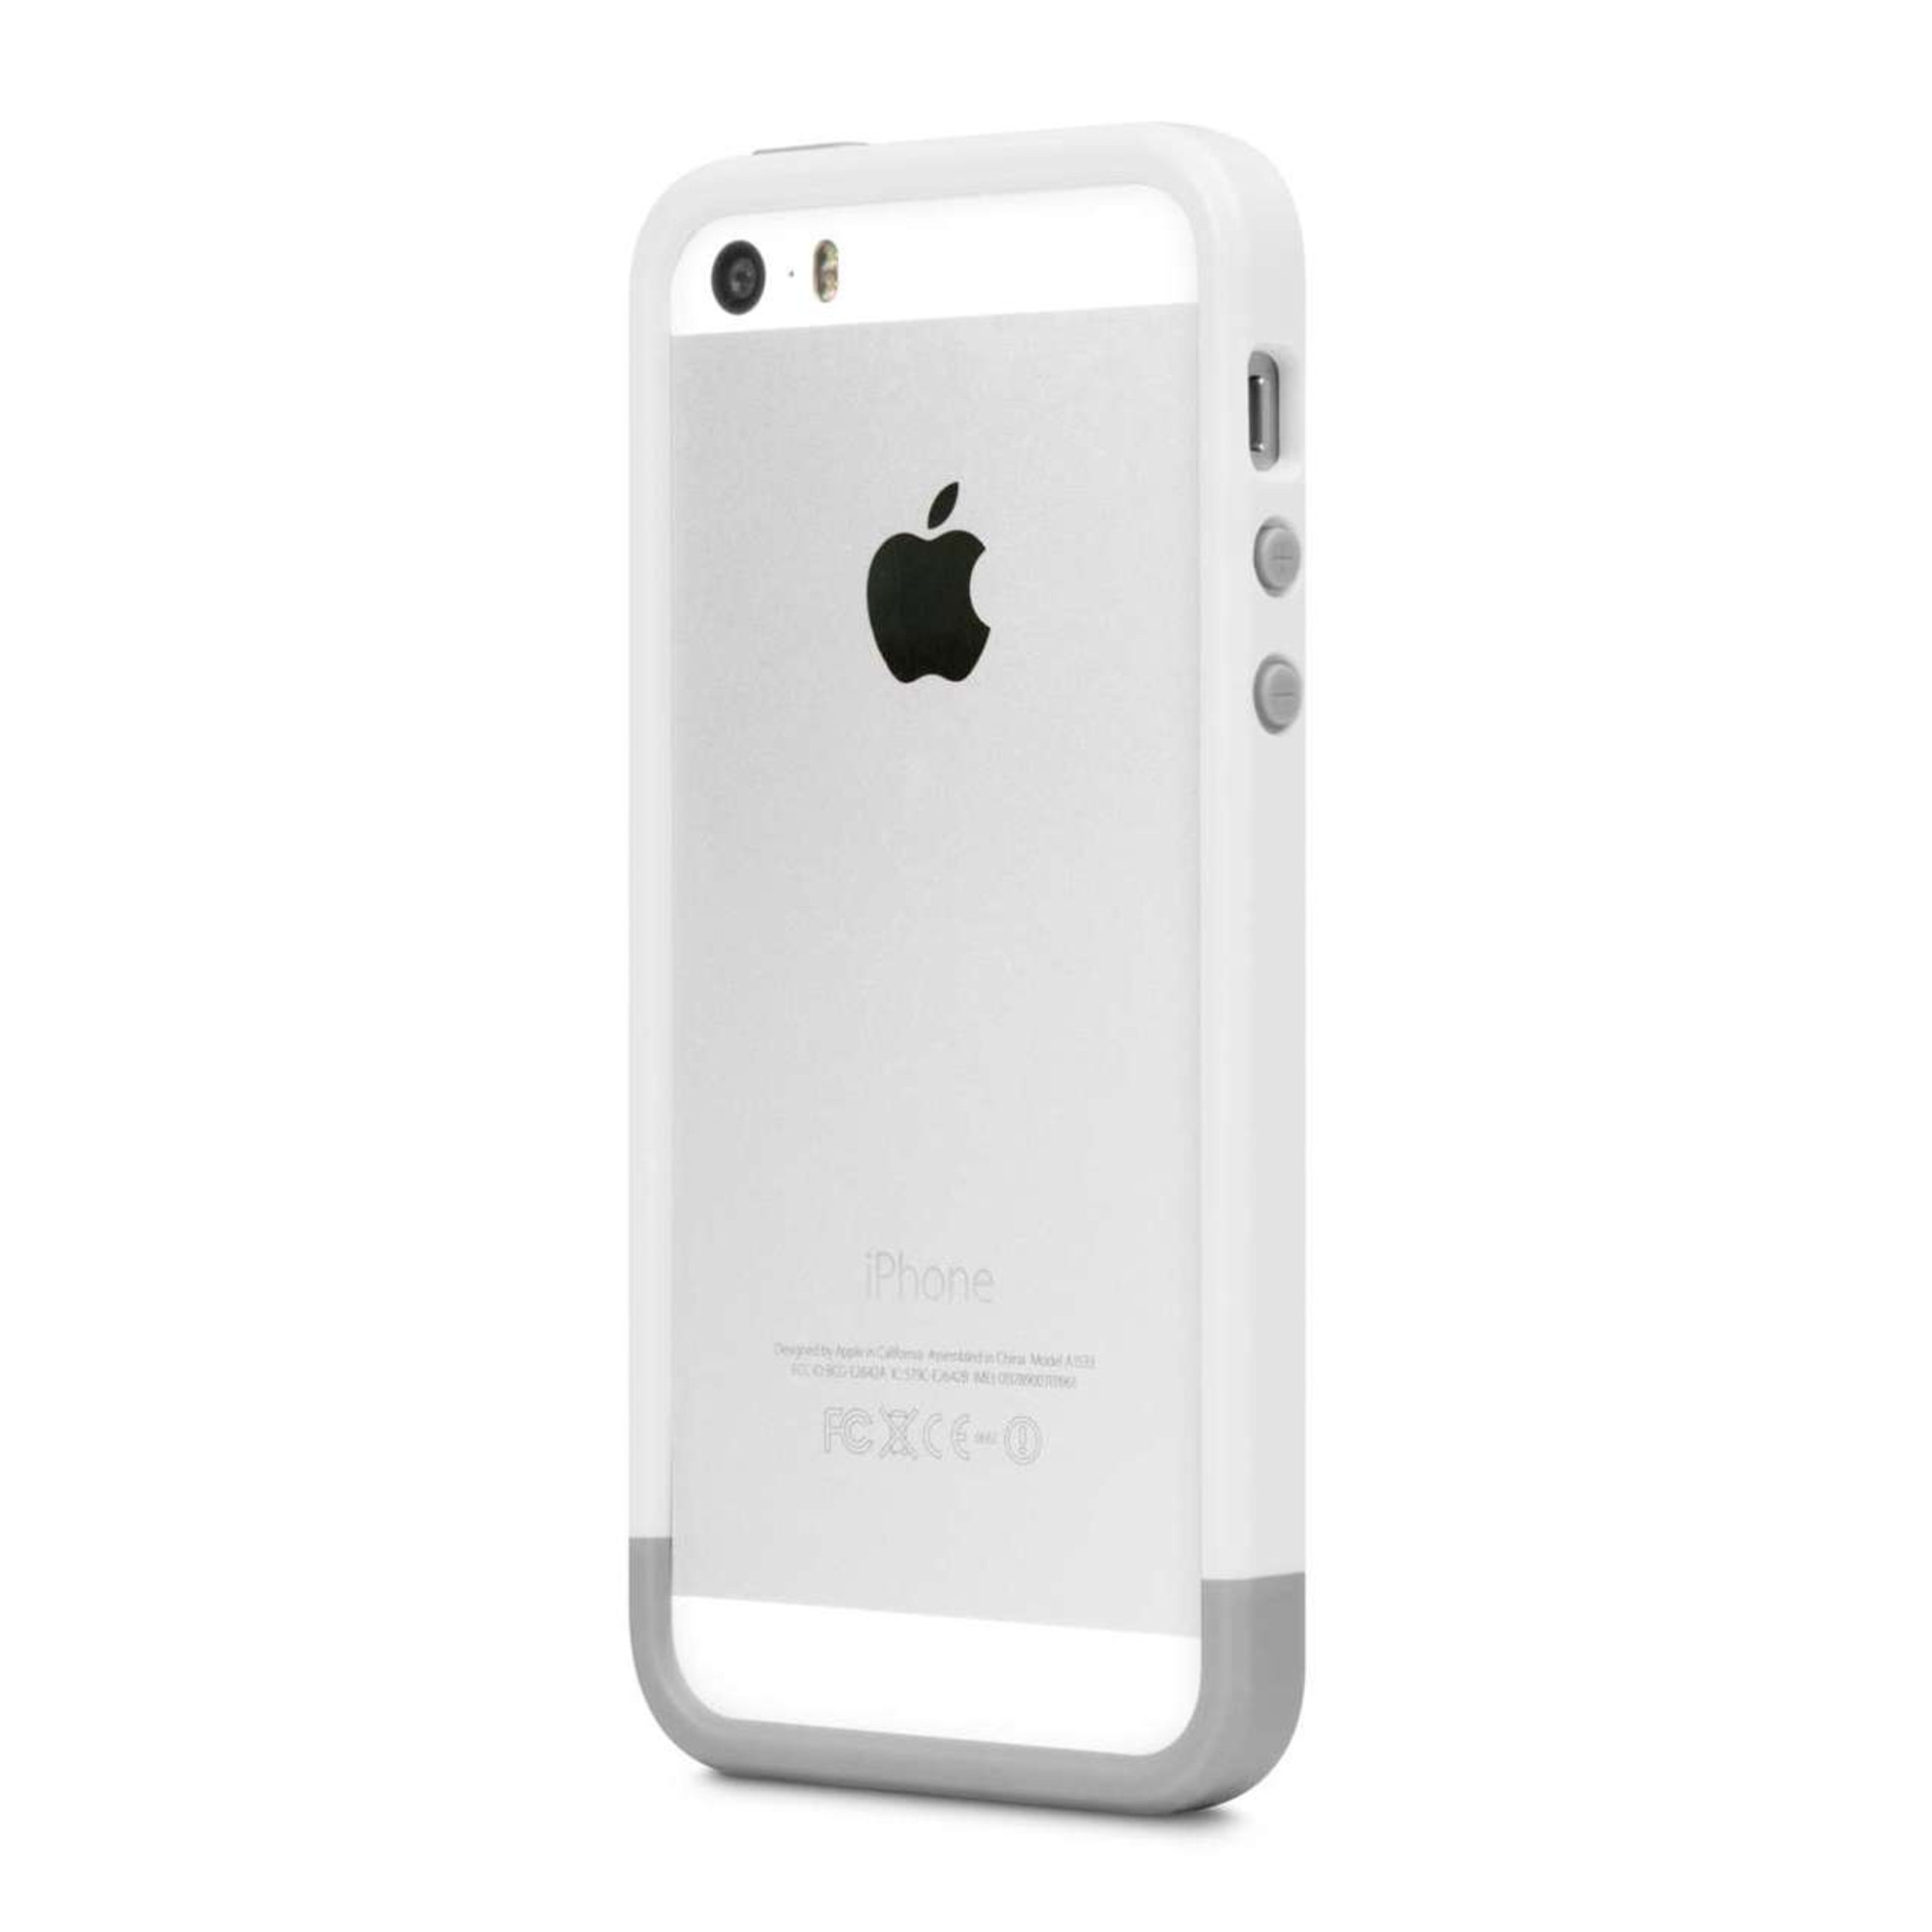 huge discount b24fd 11335 Incase Frame for iPhone 5S / 5 - White / Gray